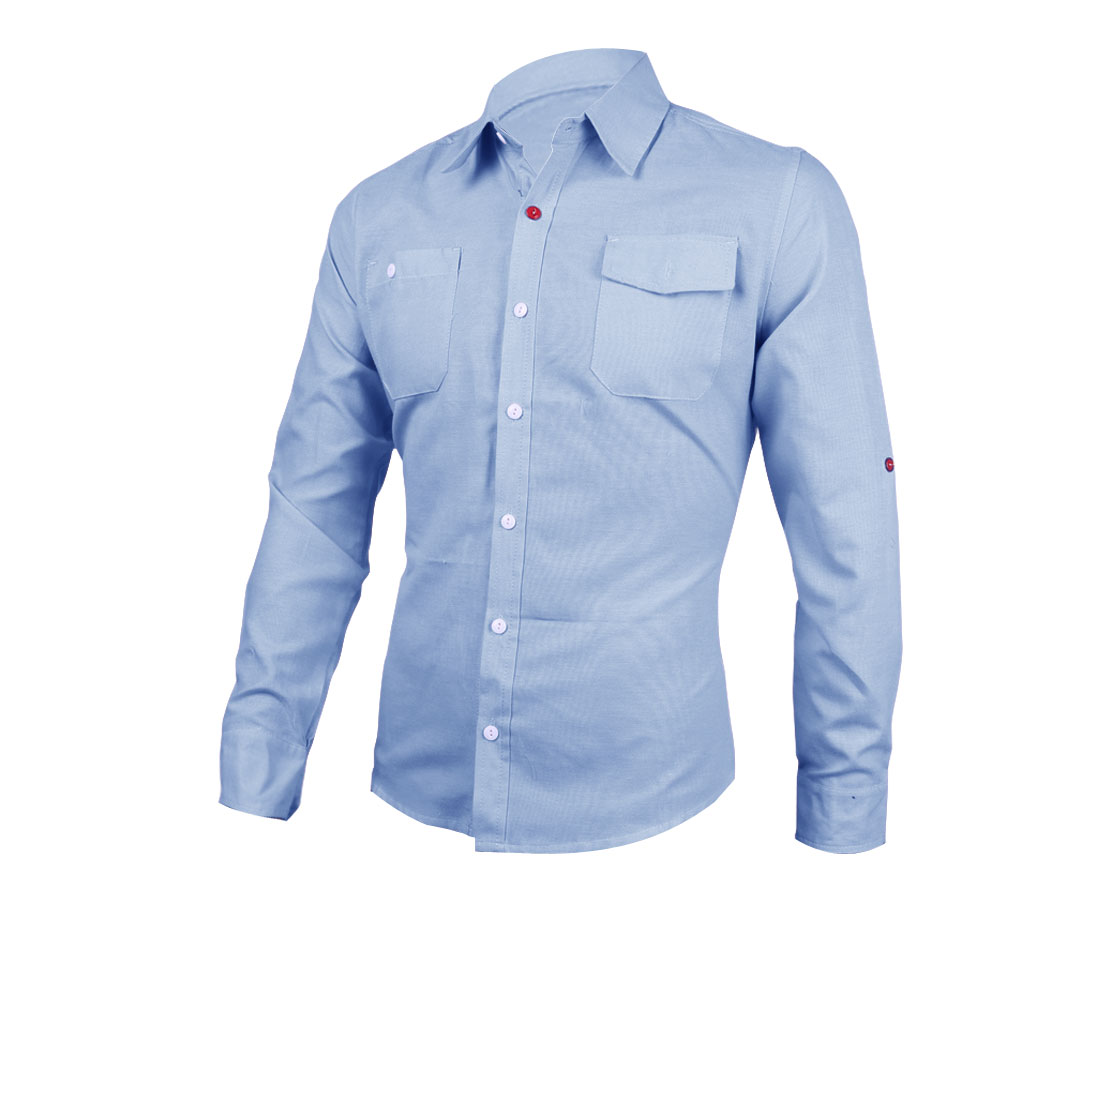 Men Point Collar Button Closure Long Sleeve Chest Pockets Solid Color Shirt Light Blue M